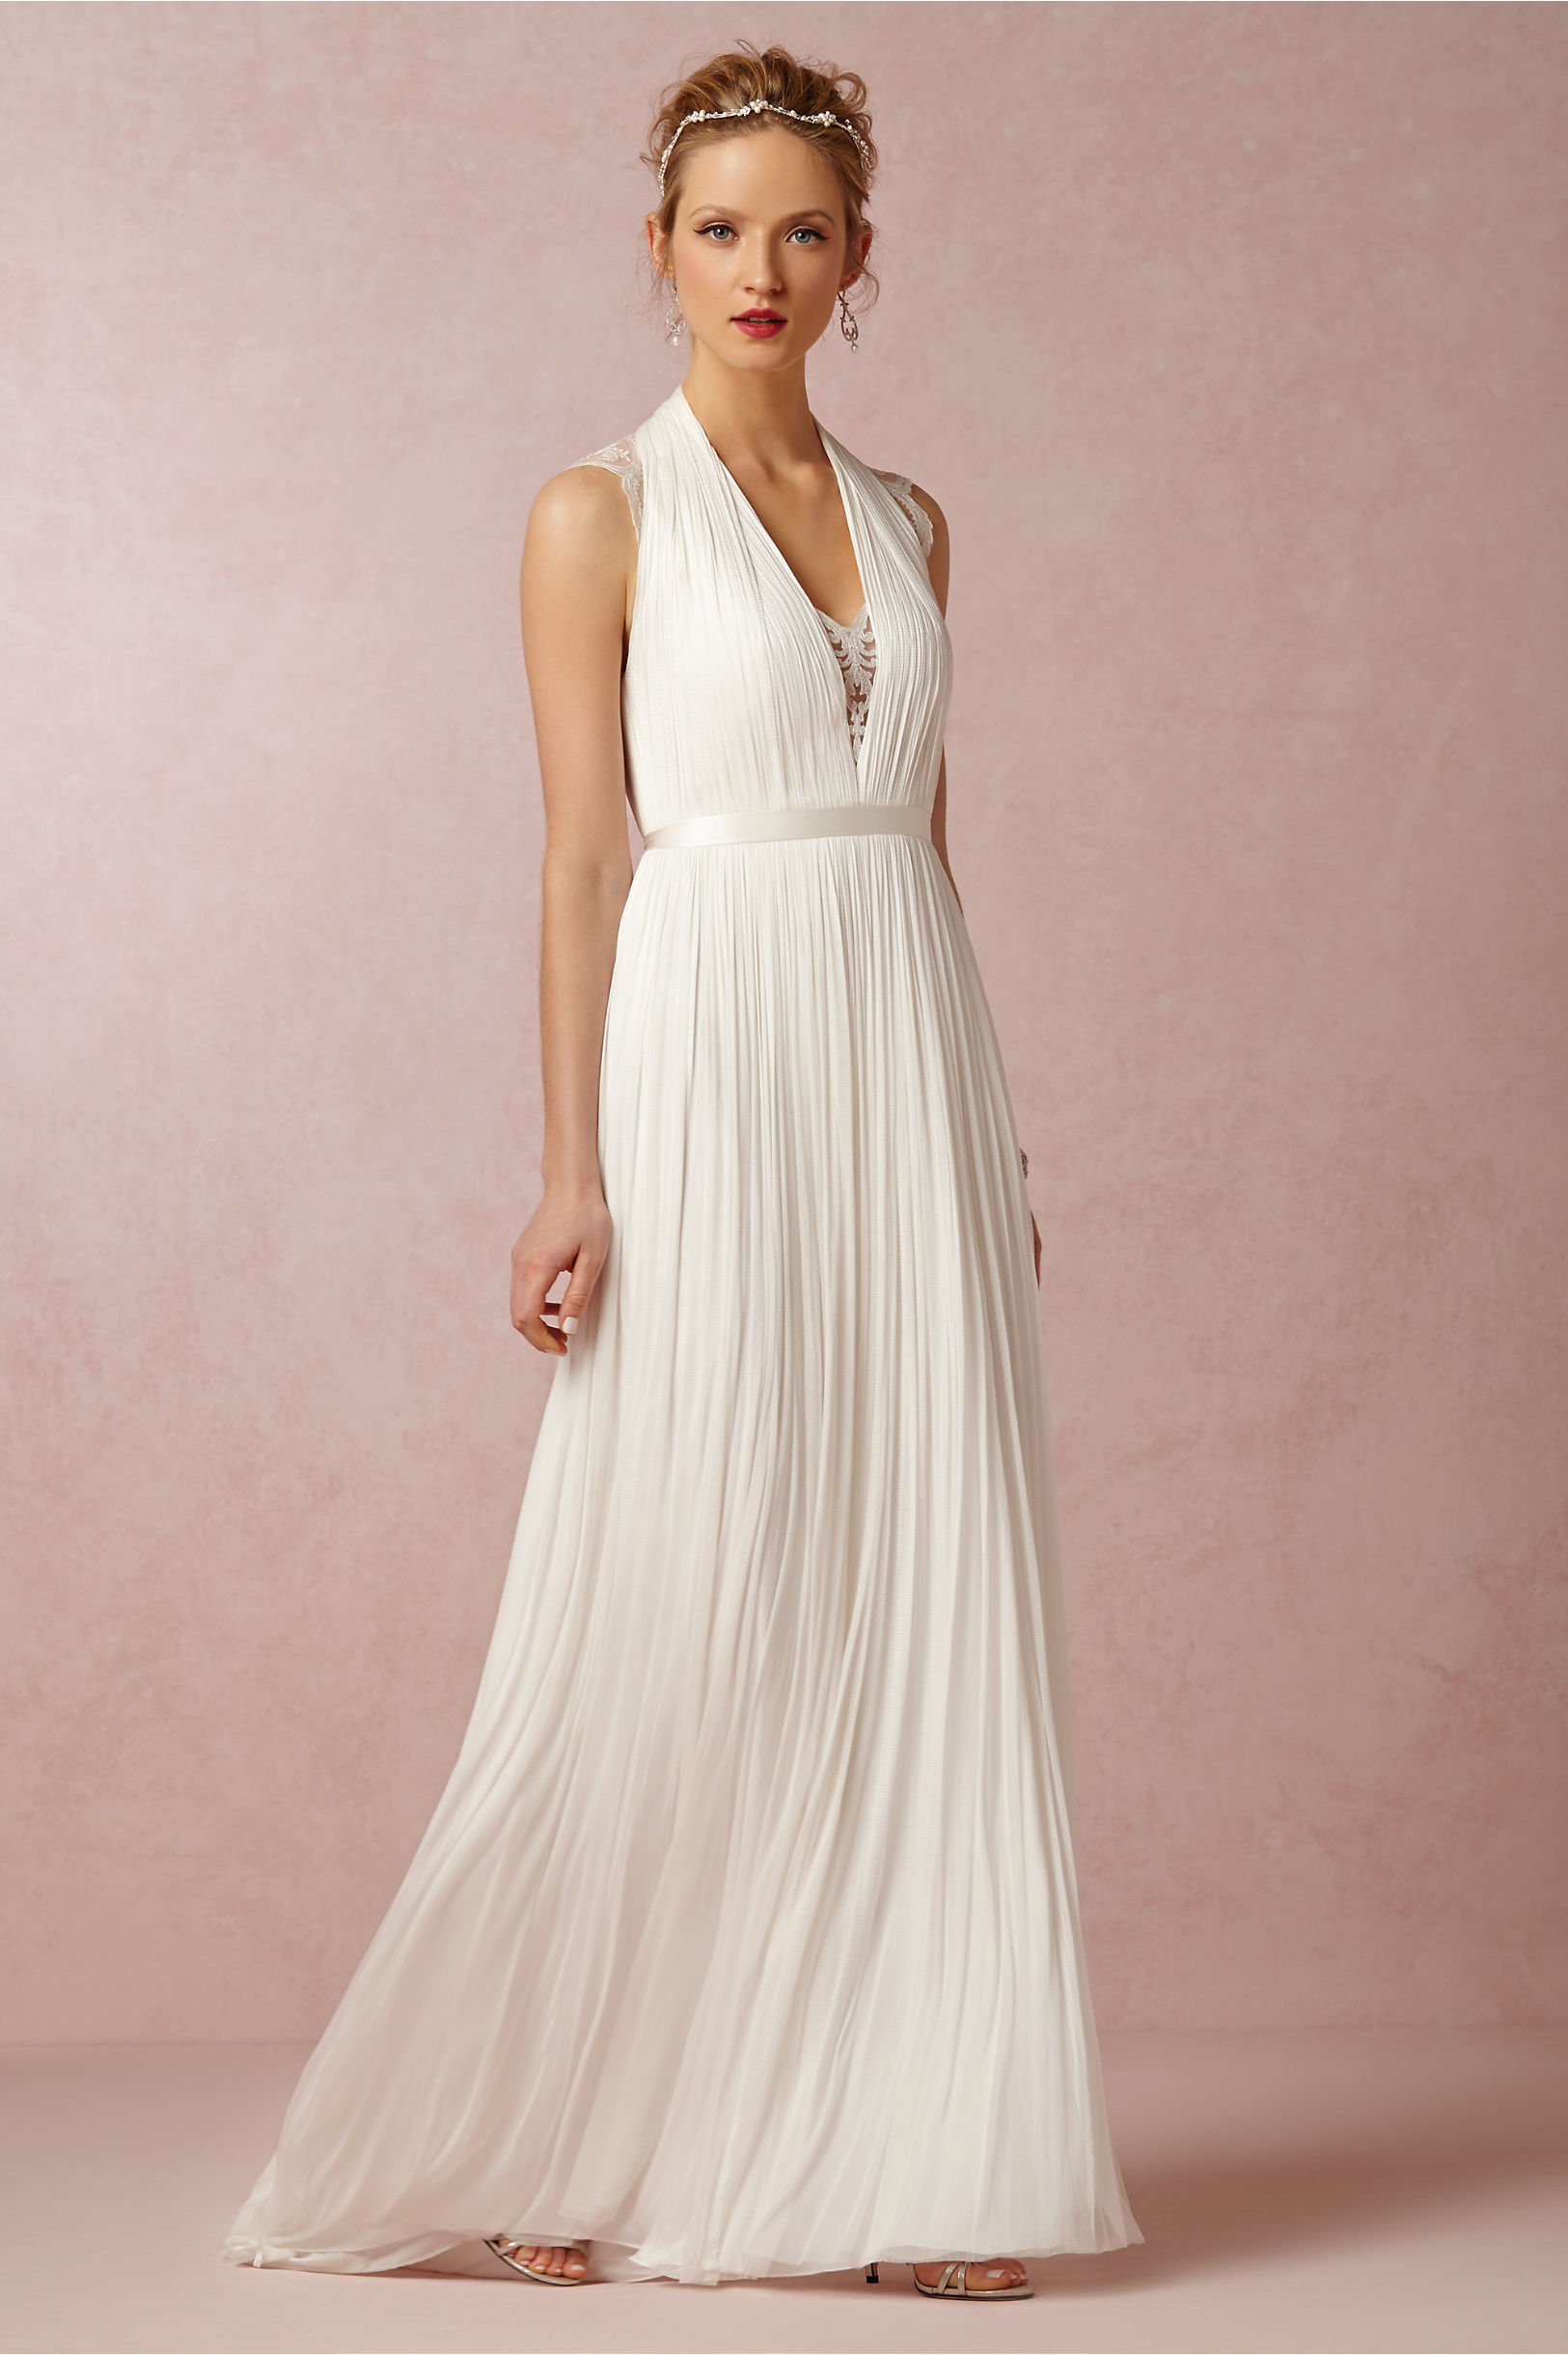 Wing Gown in Bride | BHLDN